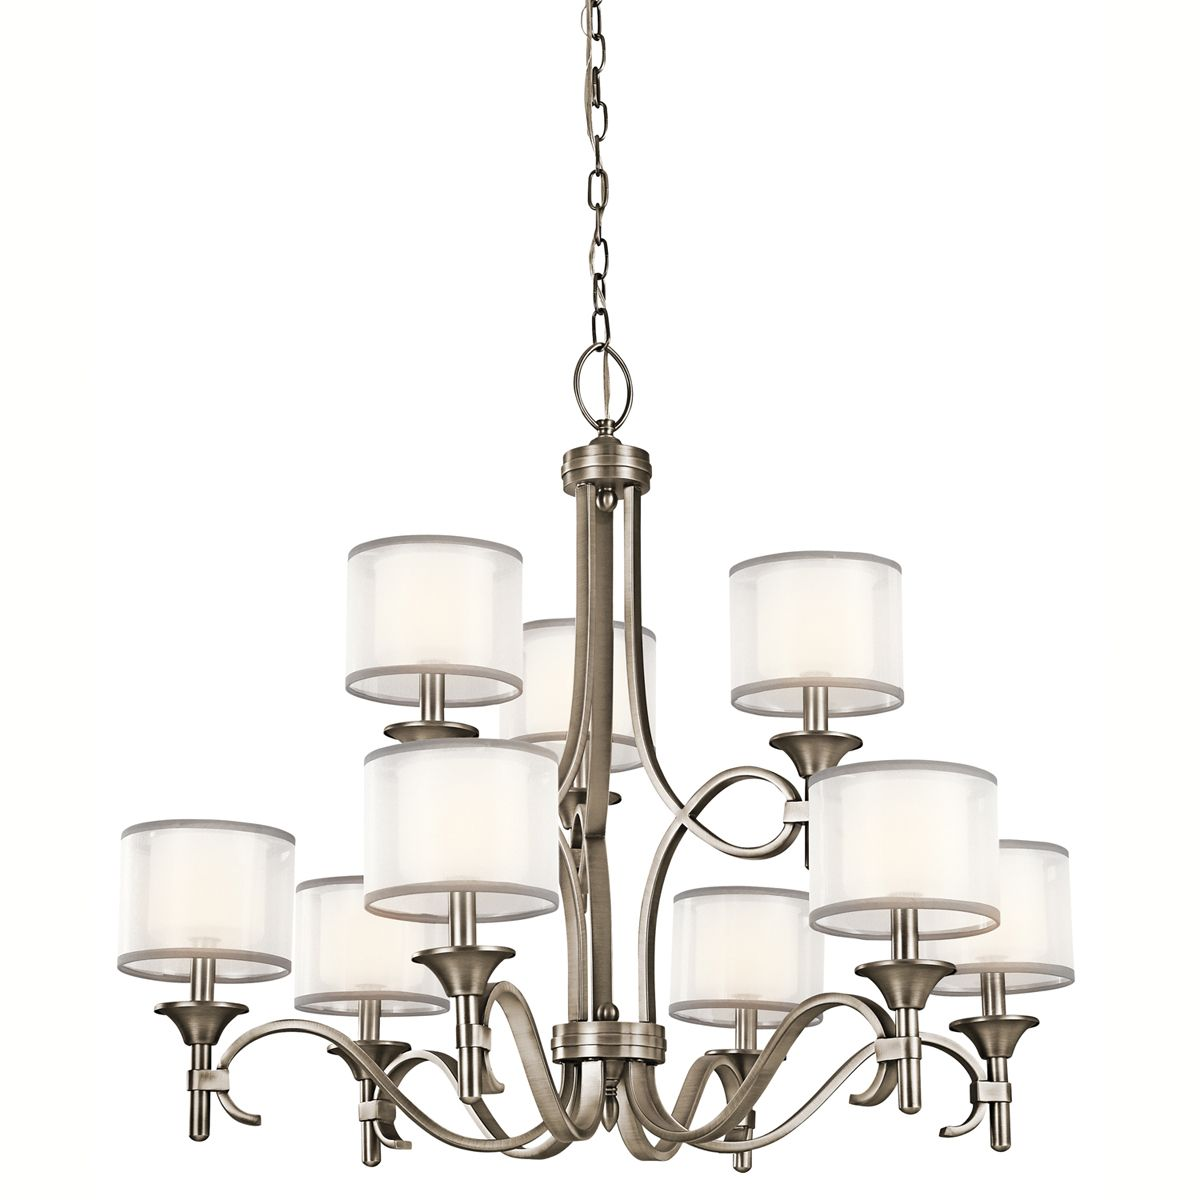 Kichler Lacey 9-Light Chandelier in Antique Pewter - Kichler Lacey 9-Light Chandelier In Antique Pewter - Transitional